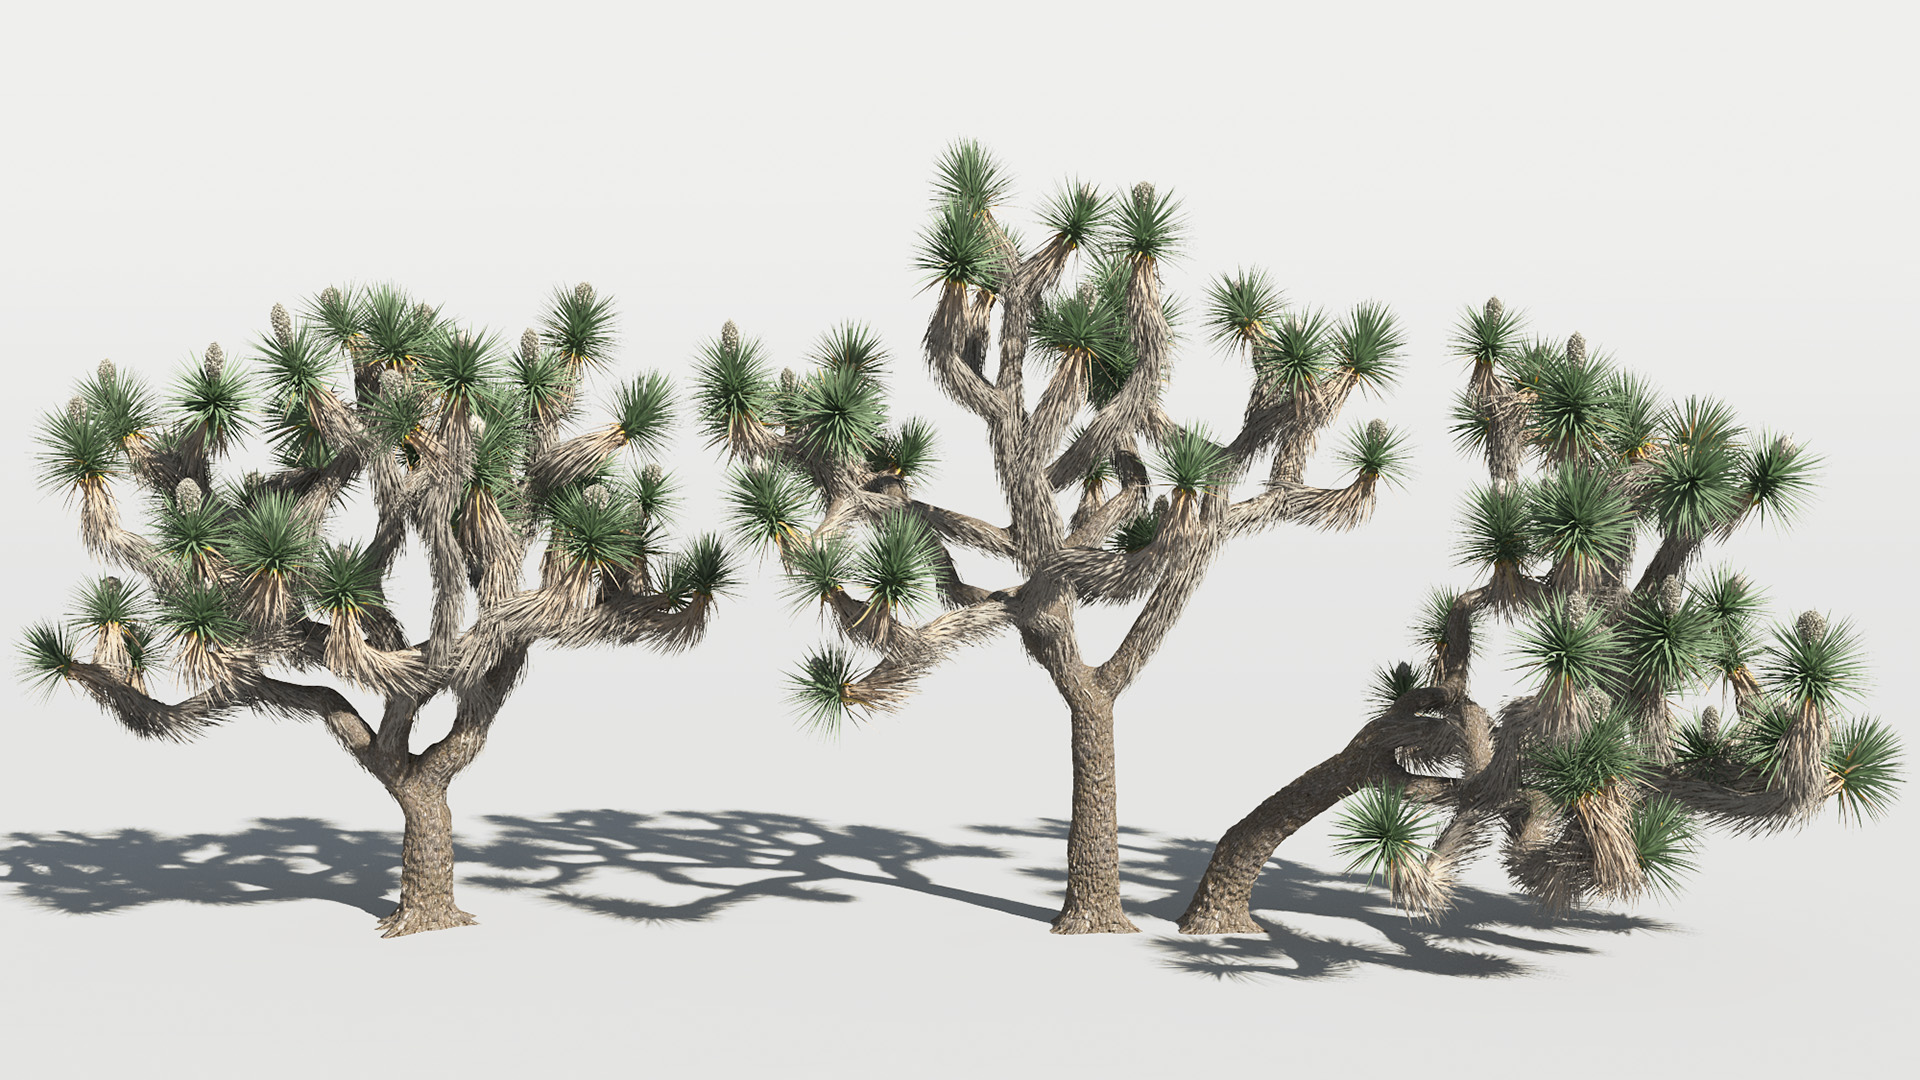 3D model of the Joshua tree Yucca brevifolia different presets